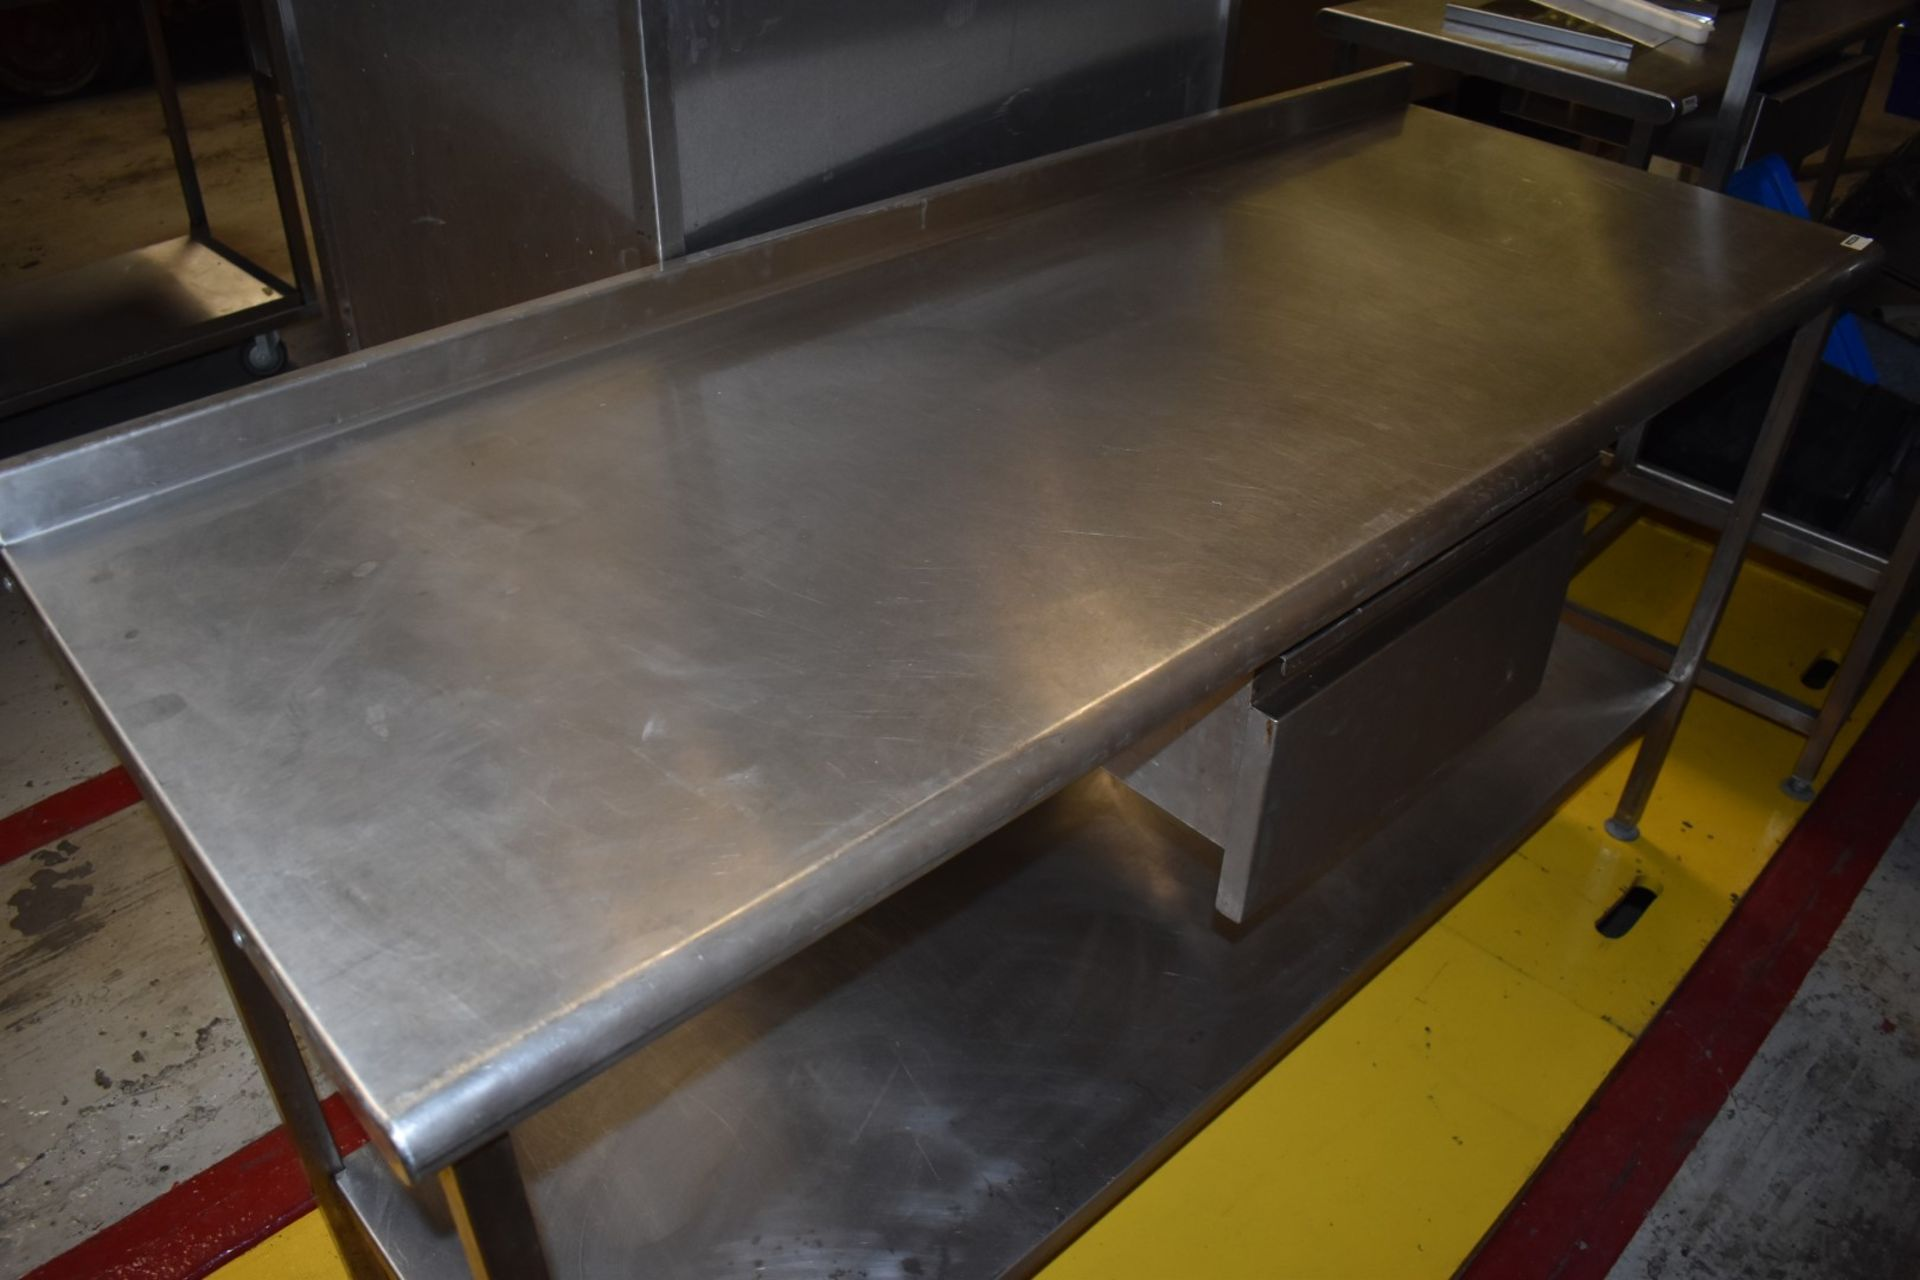 1 x Stainless Steel Prep Bench With Drawer and Undershelf - H87 x W170 x D65 cms - CL626 - Ref MS304 - Image 3 of 6